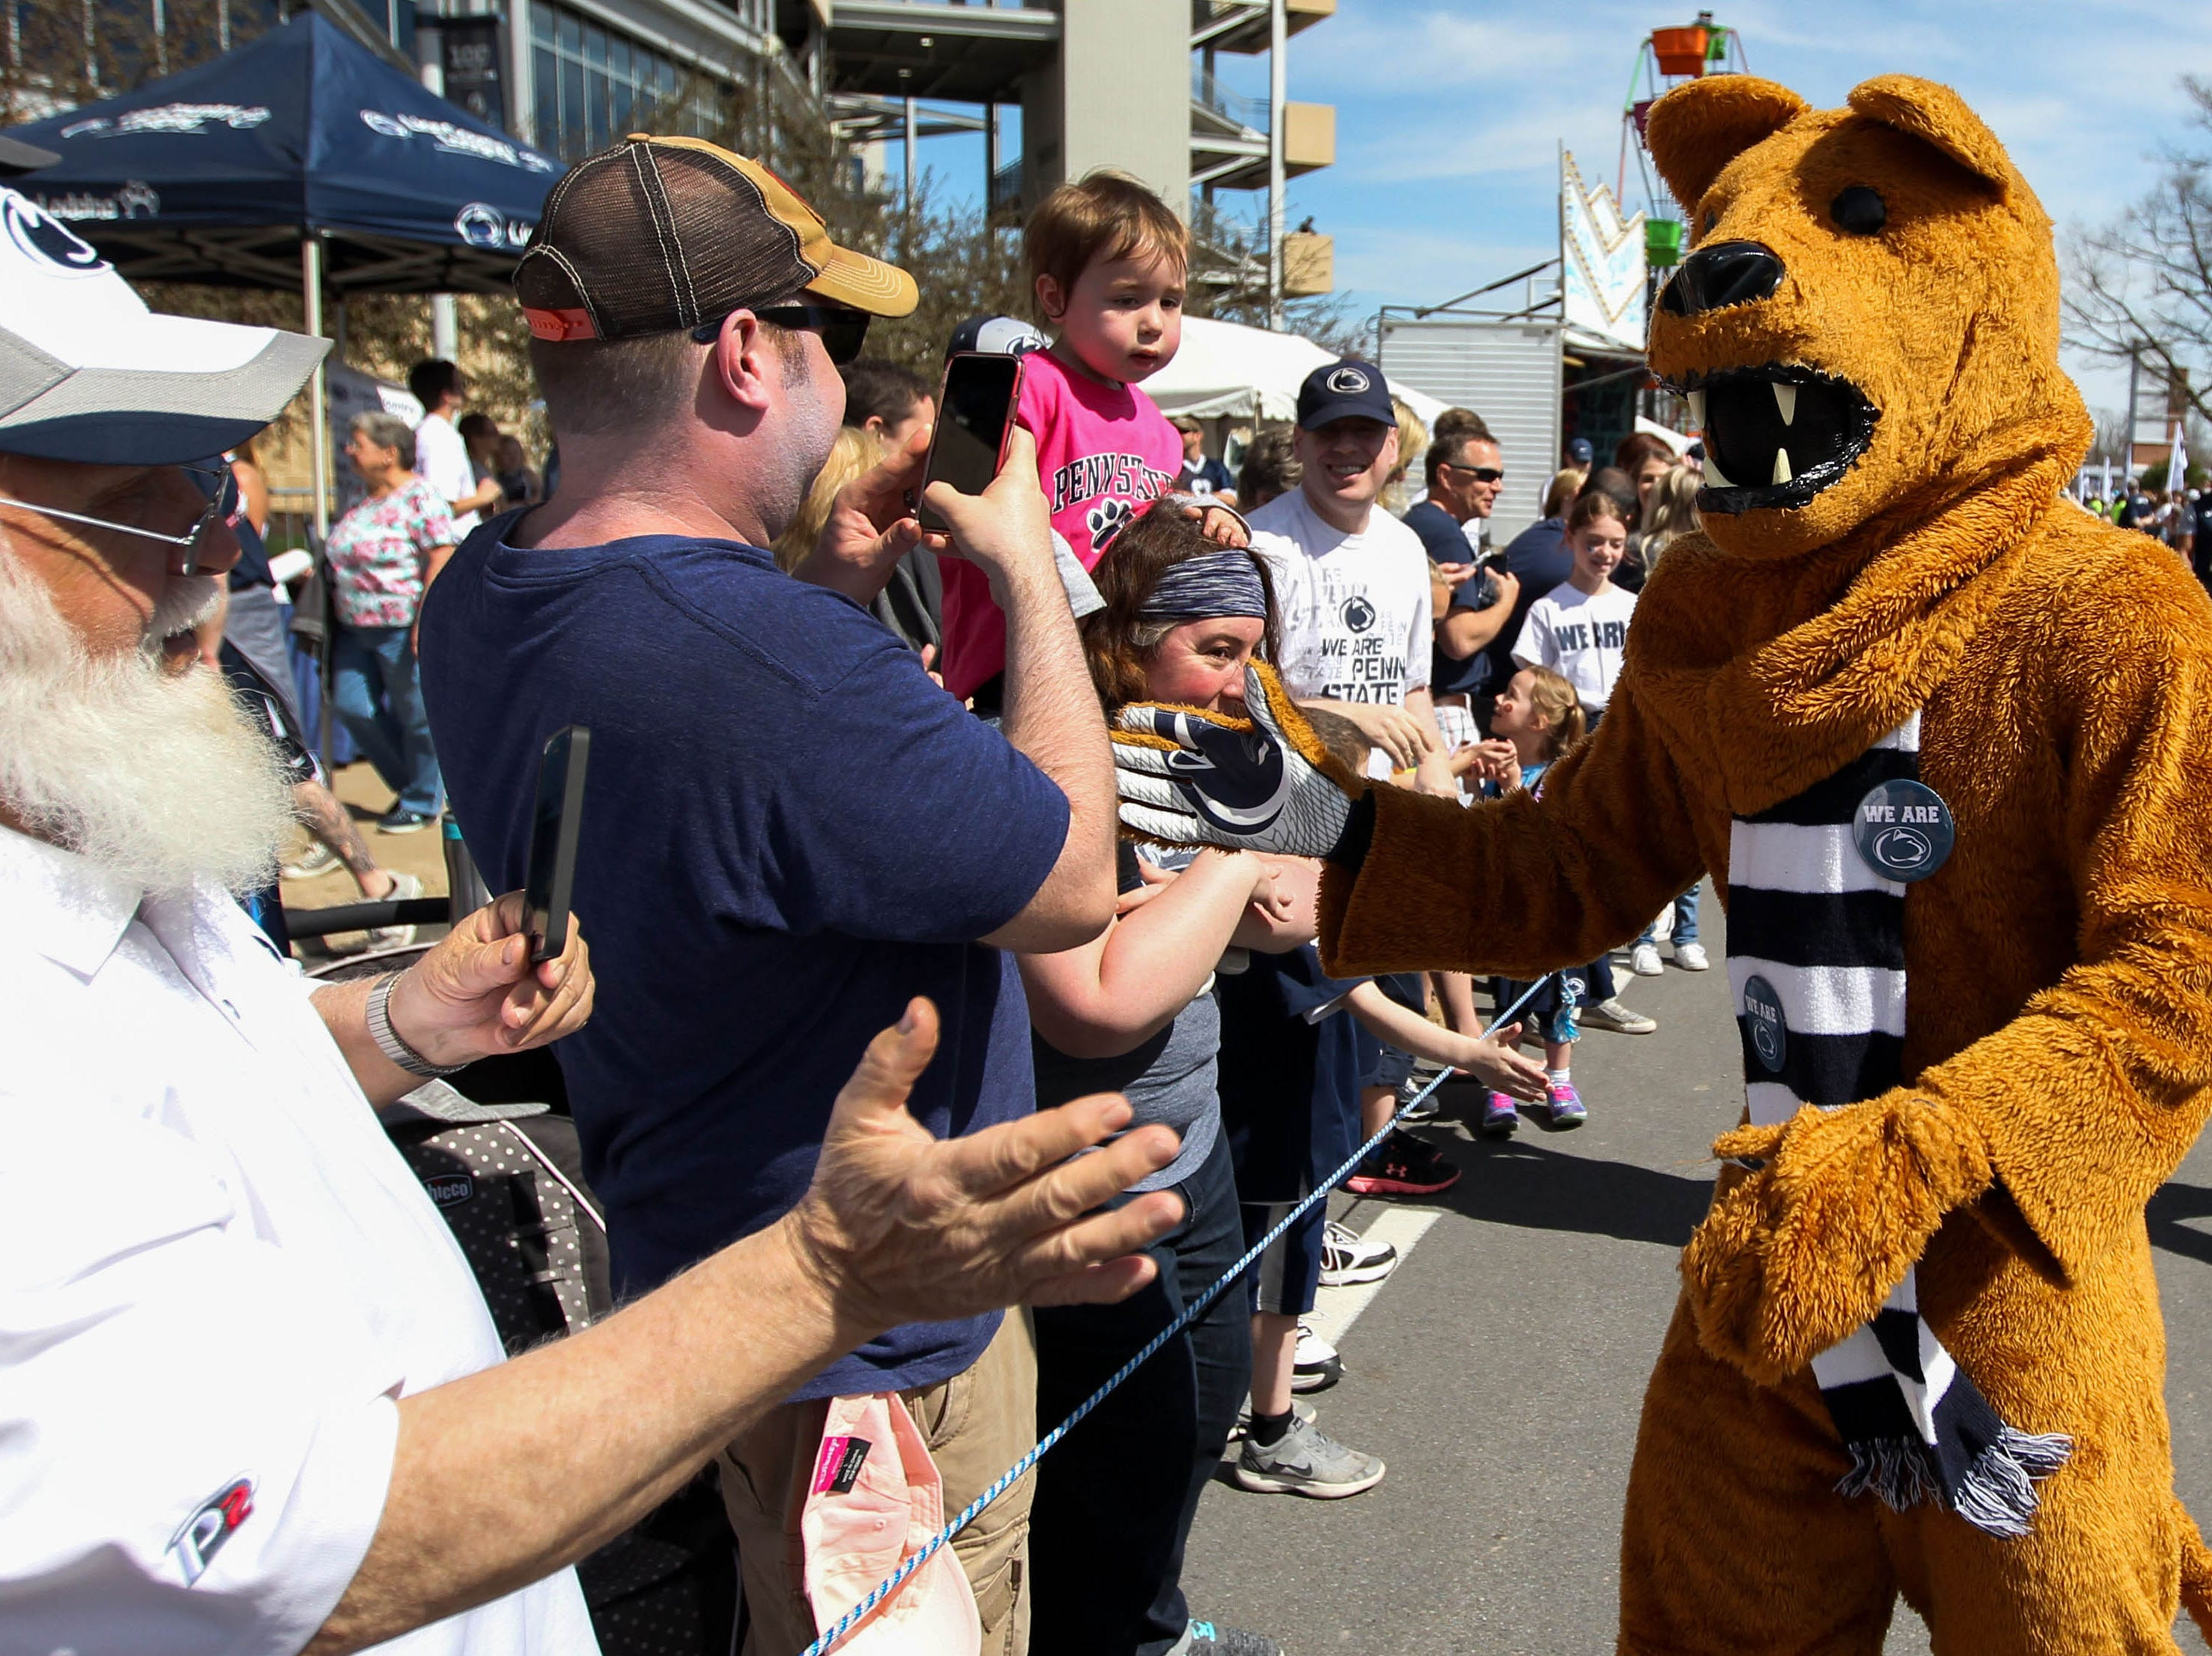 Apr 13, 2019; University Park, PA, USA; The Penn State Nittany Lions mascot shakes hands with fans prior to the Blue White spring game at Beaver Stadium. Mandatory Credit: Matthew O'Haren-USA TODAY Sports